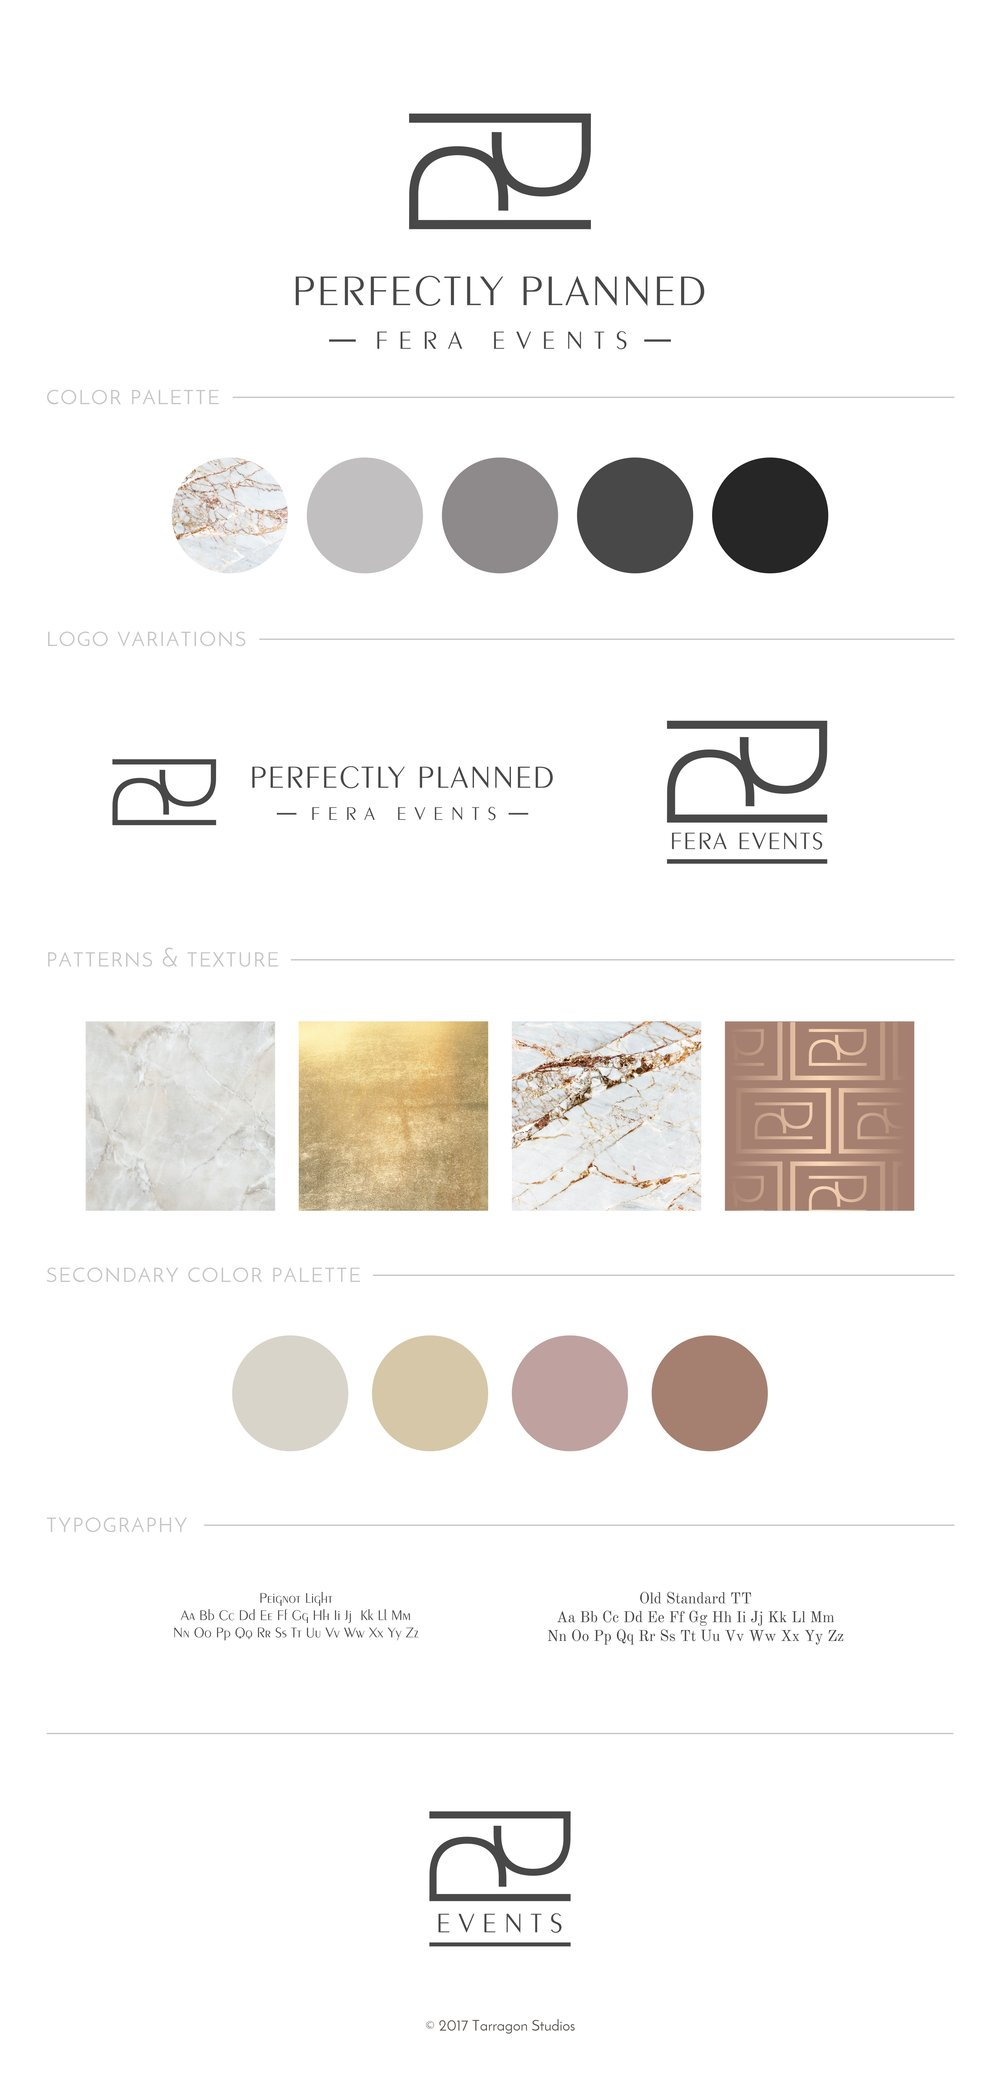 Perfectly Planned Fera Events Style Guide by Tarragon Studios